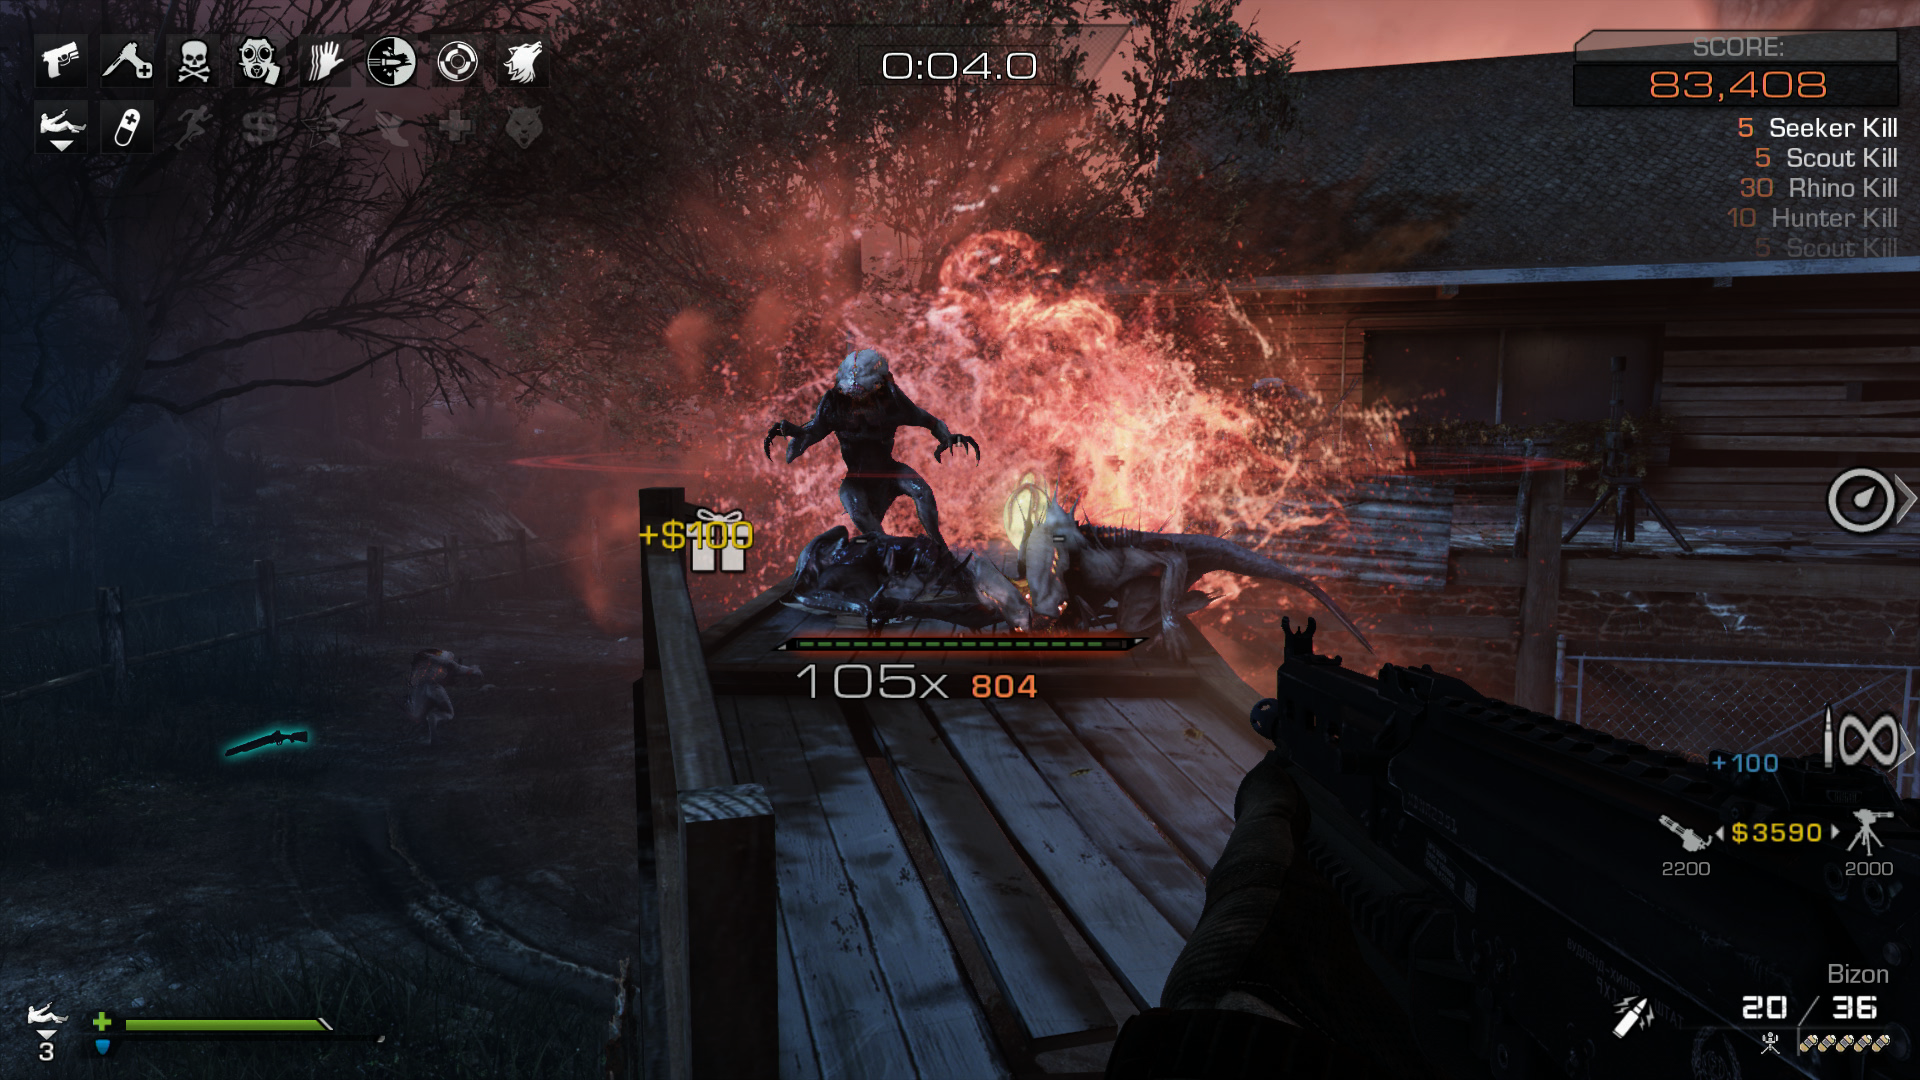 Call Of Duty Ghosts Chaos Mode Gameplay Detailed In New